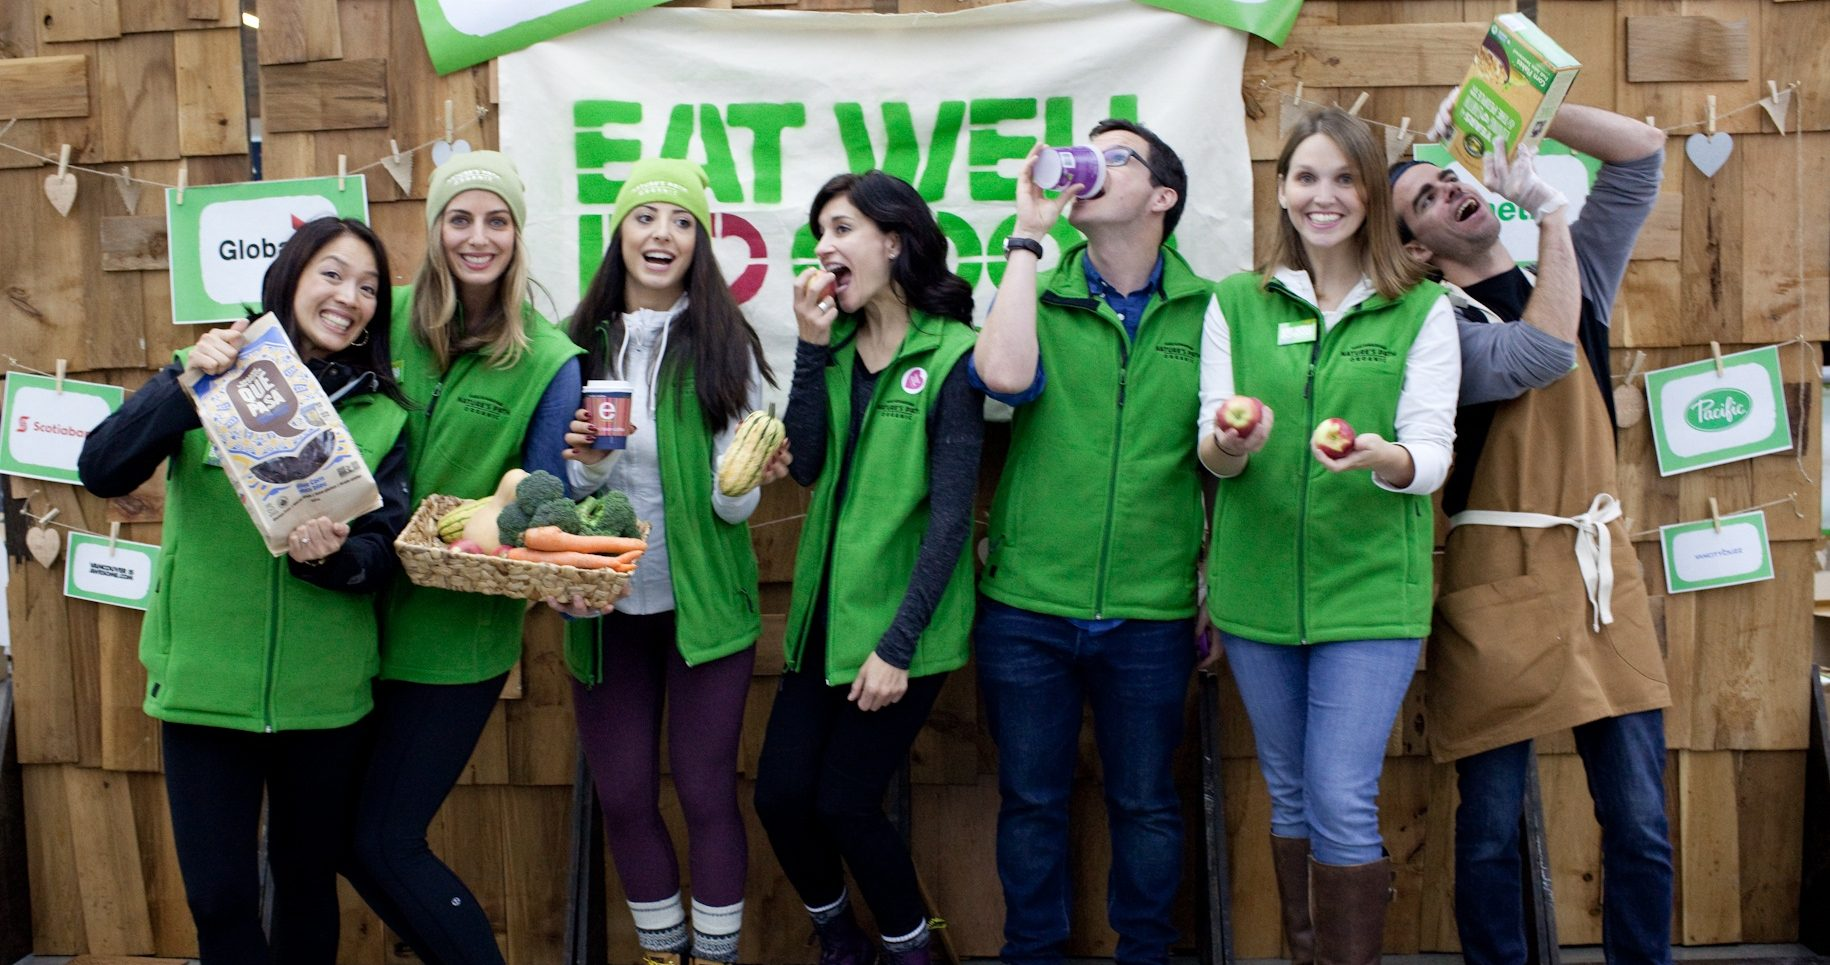 Eat Well Do Good: Pop-up organic market in Vancouver for a good cause